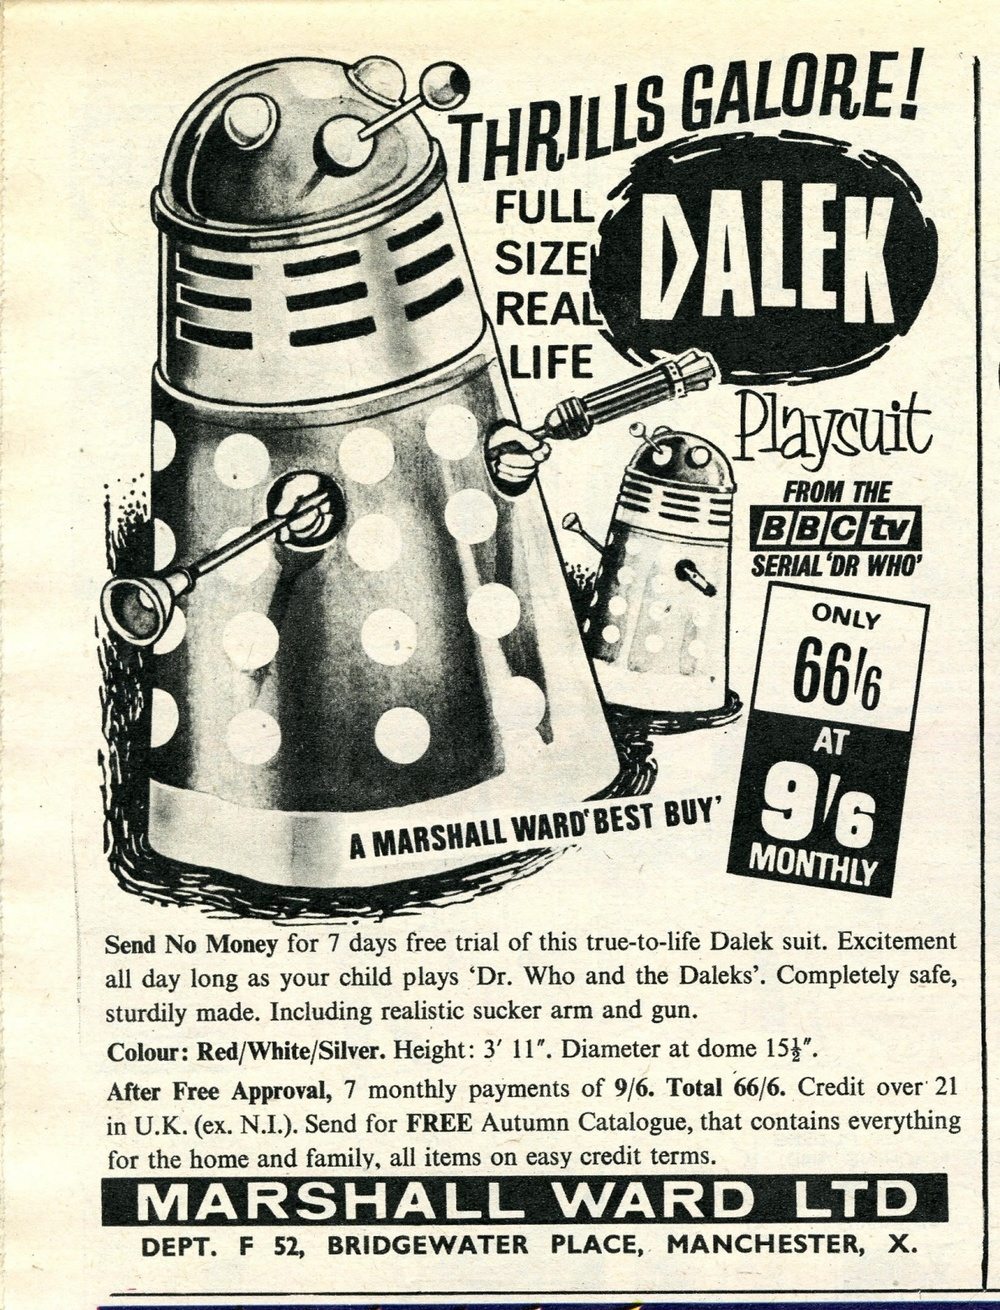 Ad. for Berwick's Toy Co. Ltd. Dalek playsuit from Marshall Ward Ltd. in TV Century 21 no. 41, 30 October 2065 (1965)